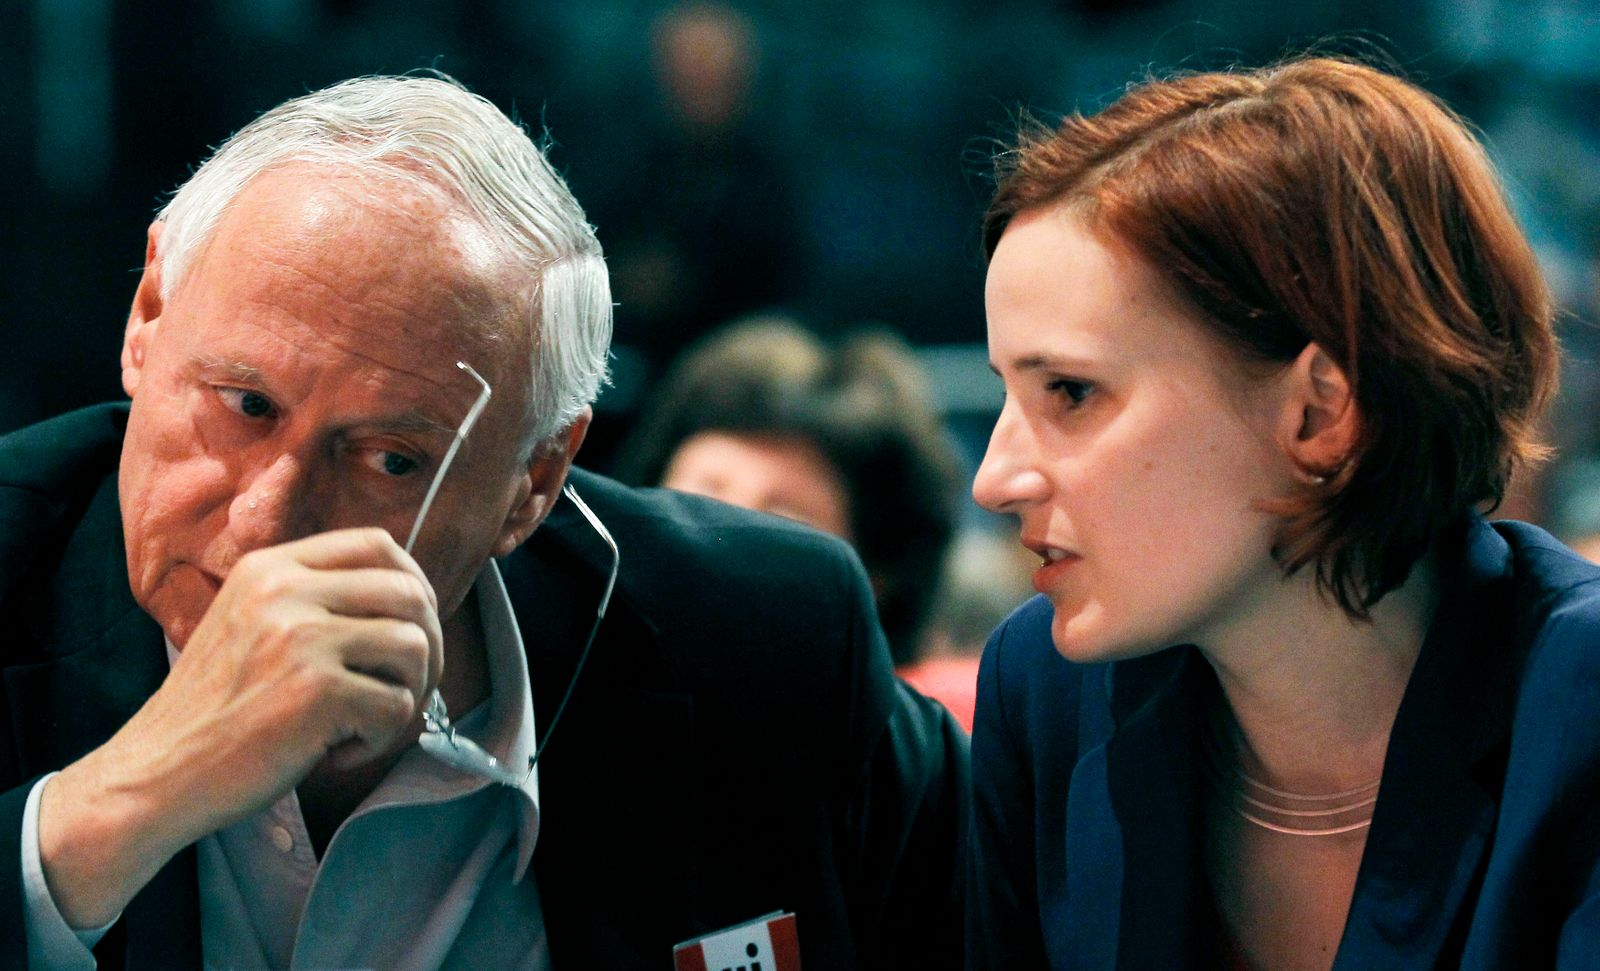 Kipping co-leader of left wing Die Linke party talks with veteran party member Lafontaine at federal party congress in Goettingen